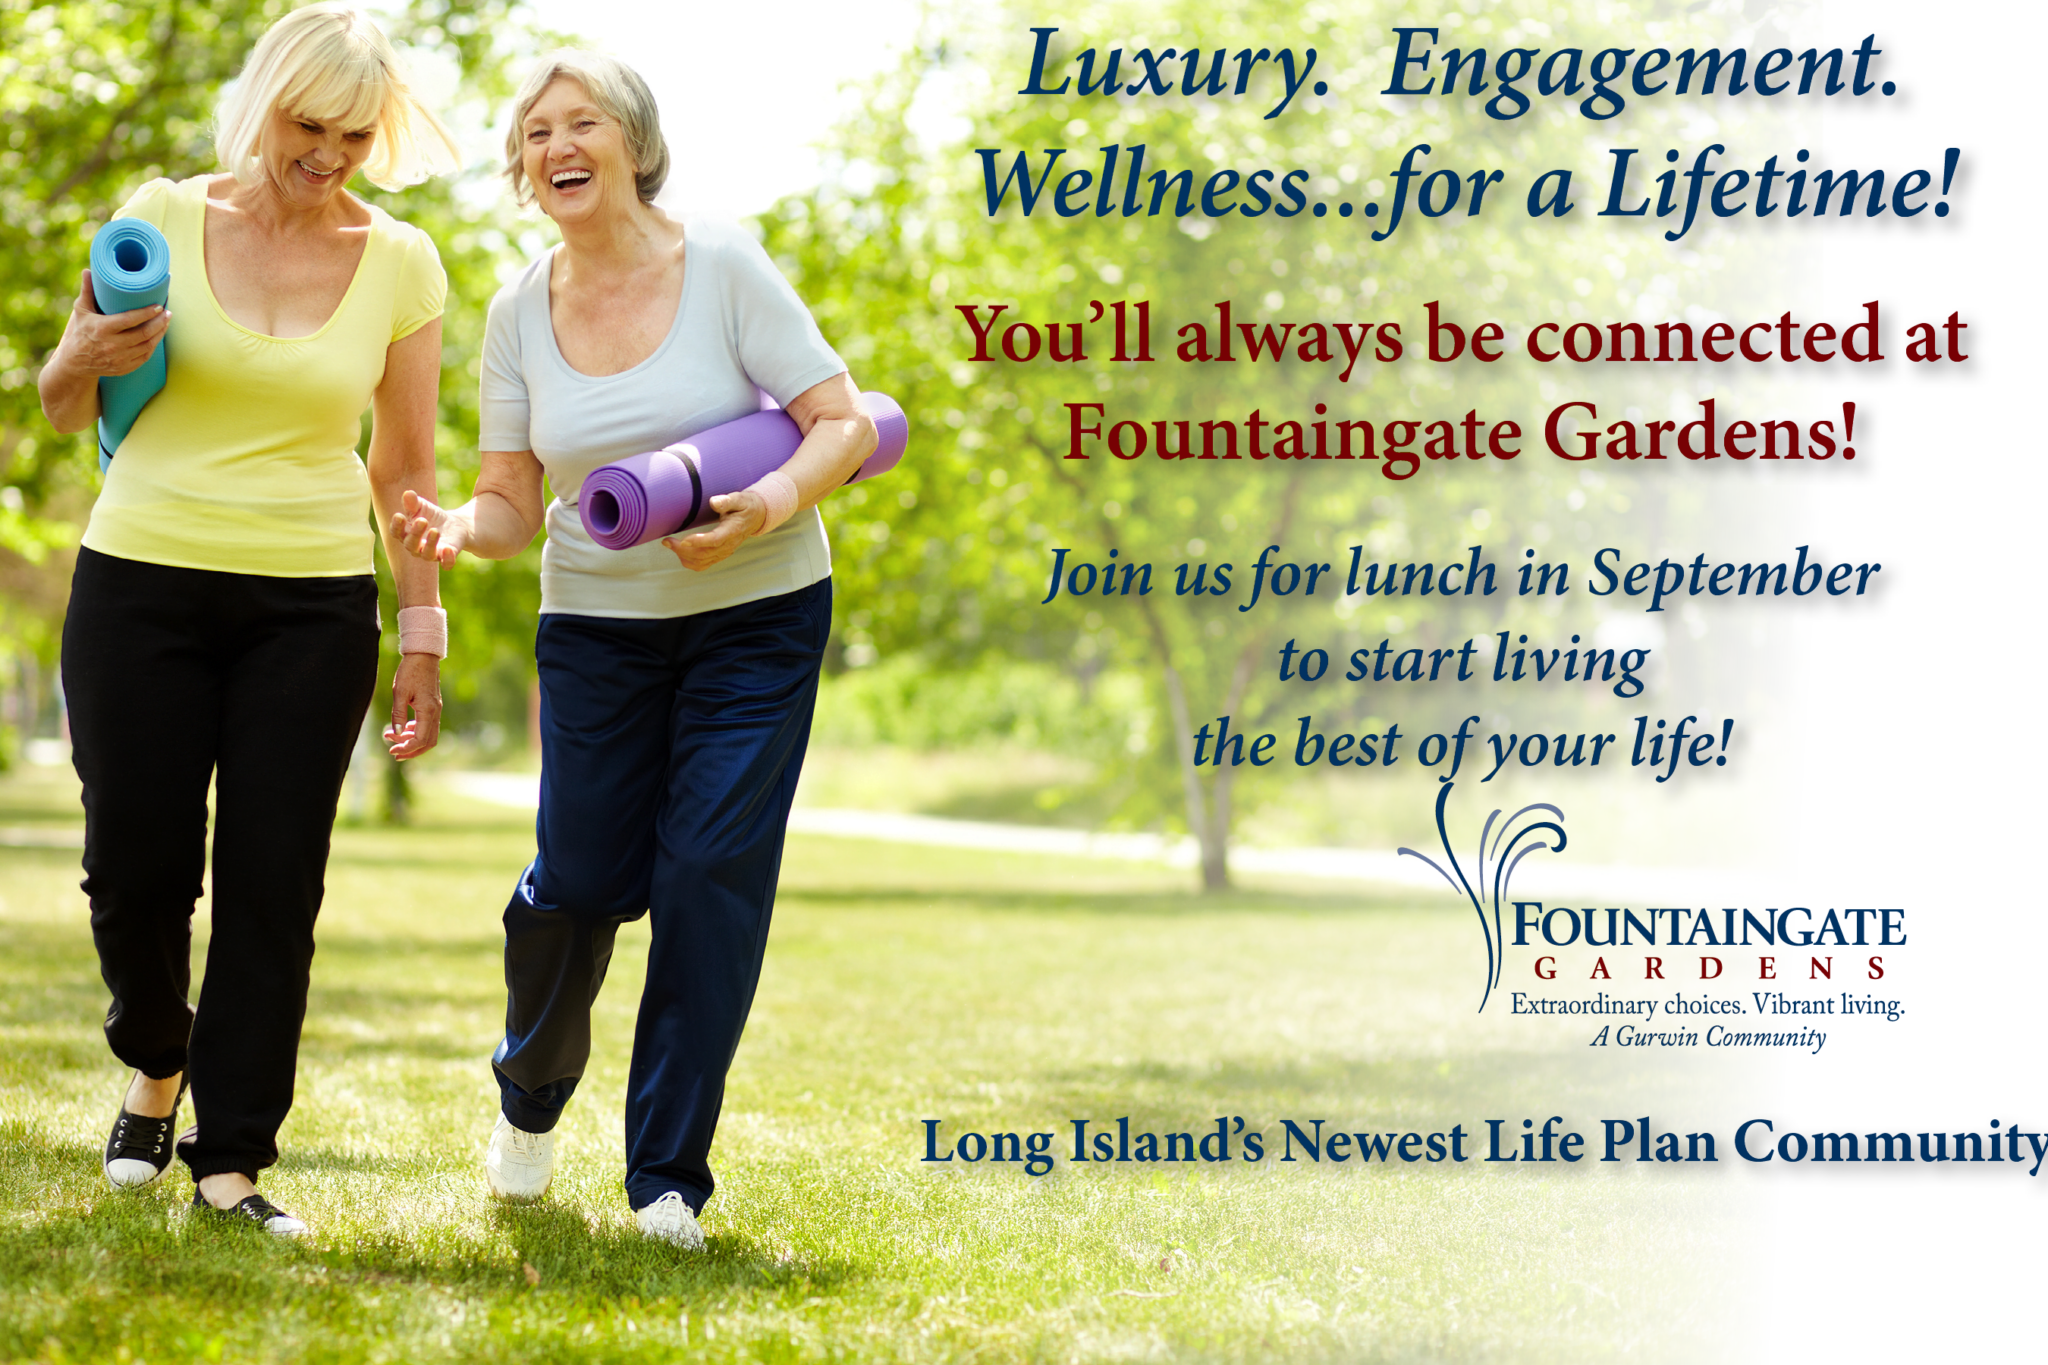 Fountaingate Gardens is independent living at it's best!